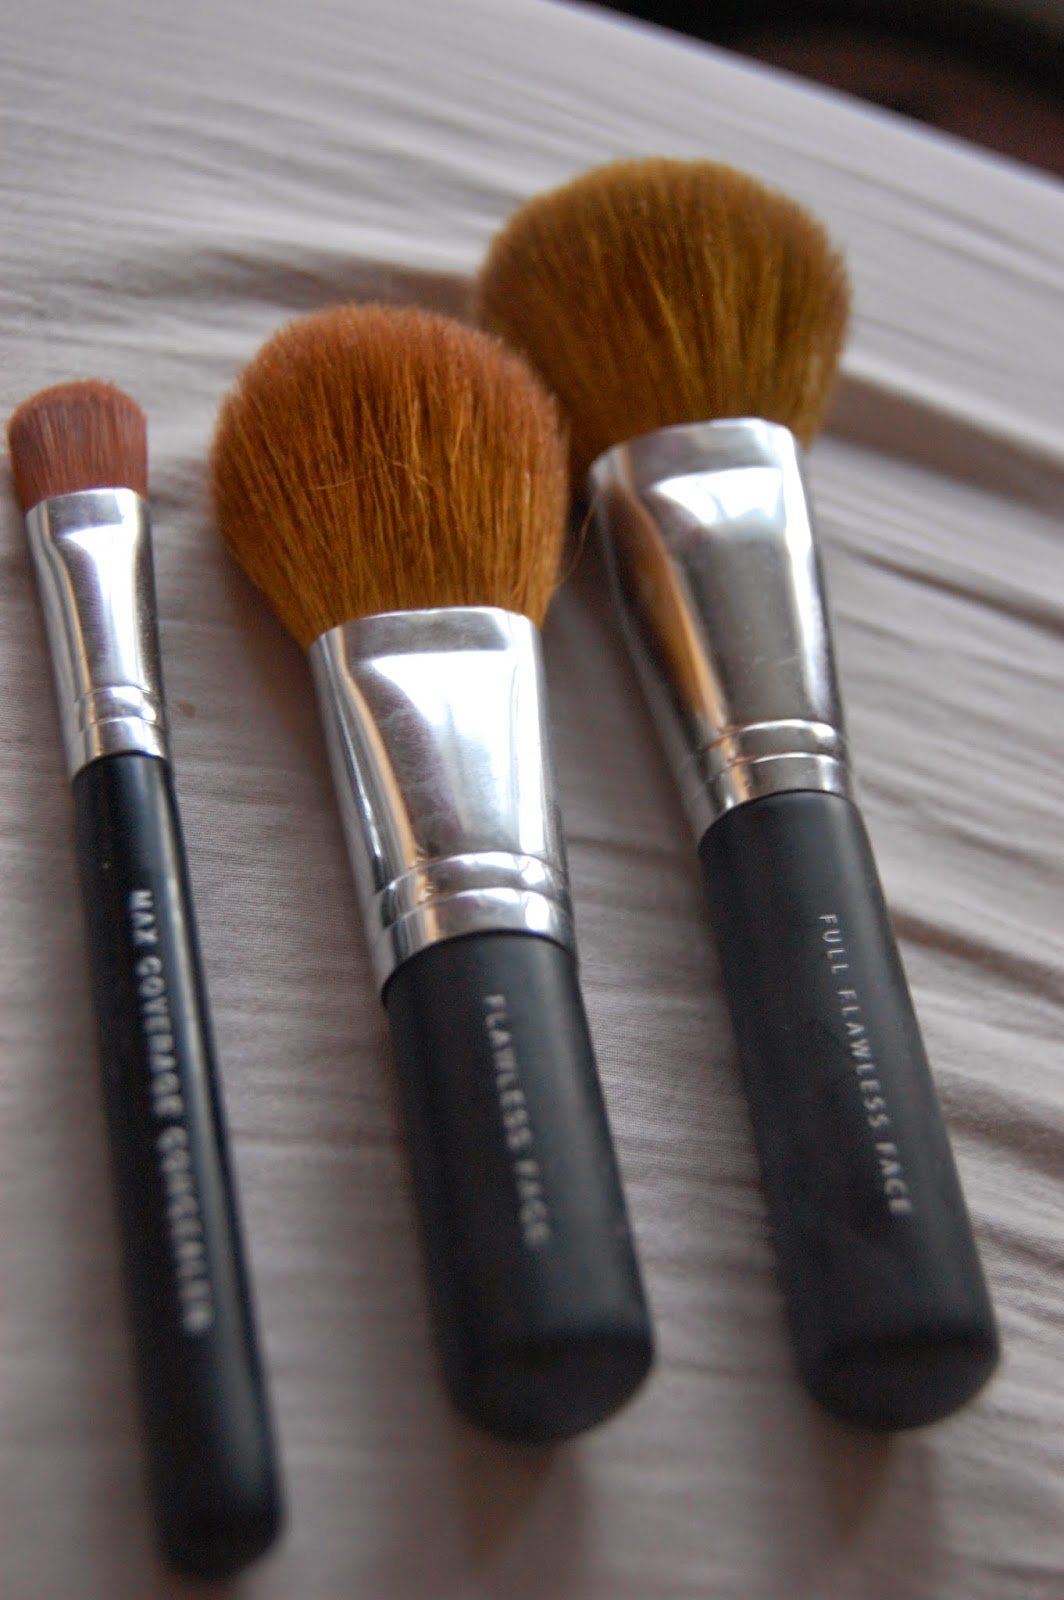 what a looker: Bare Minerals Makeup